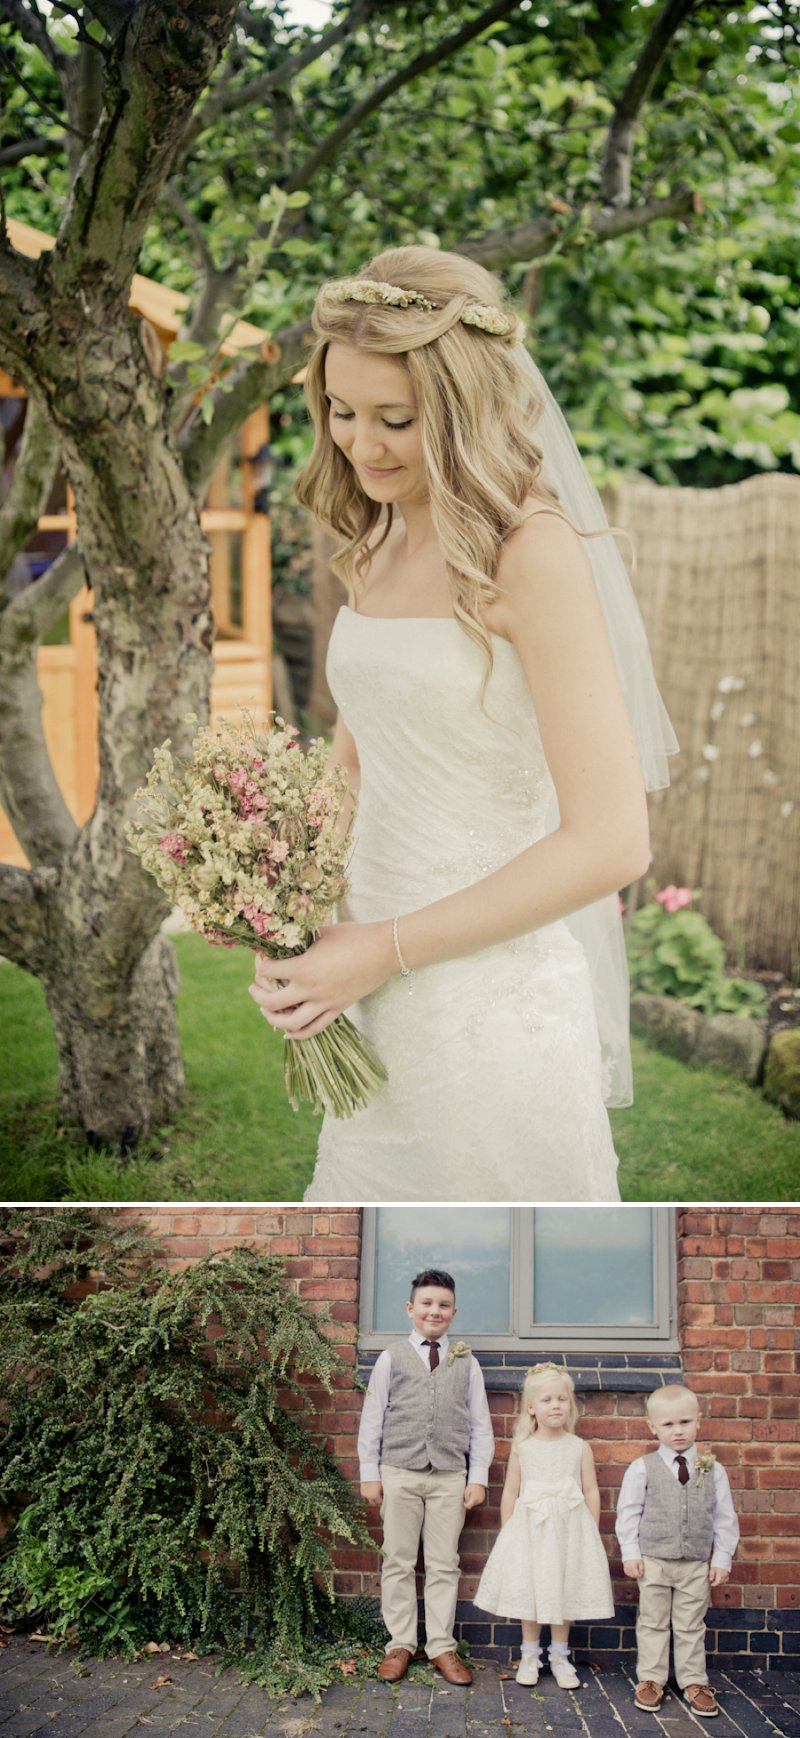 Rustic Wedding At Newton House In Derbyshire With Bride In Sophia Tolli Gown With A Dried Flower Headpiece From The Artisan Dried Flower Co And Groom In Tweed Waistcoat With Images From Jake Morley 2